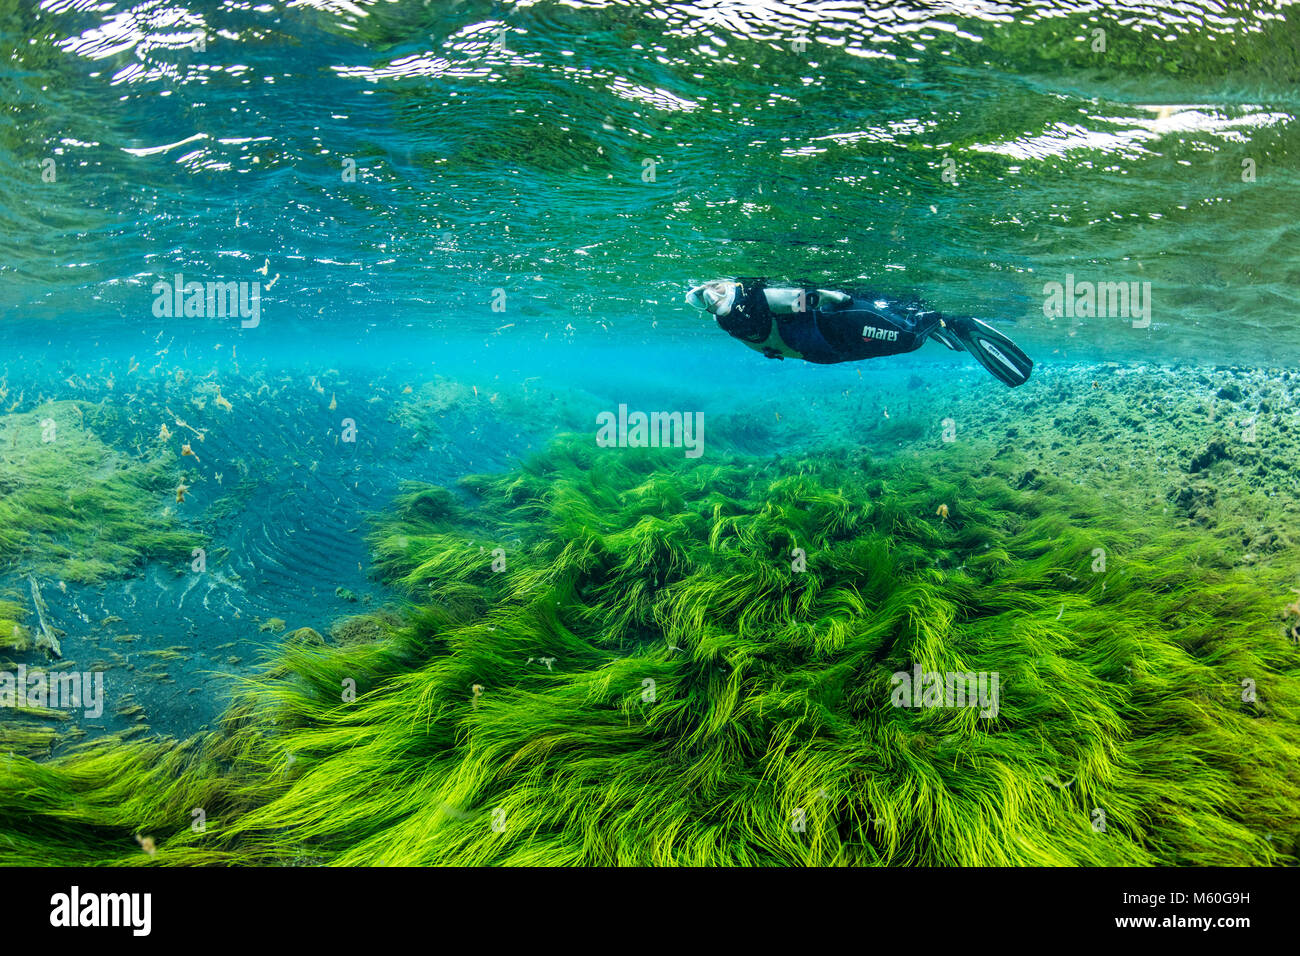 Snorkeling in Litla Sping, Iceland - Stock Image